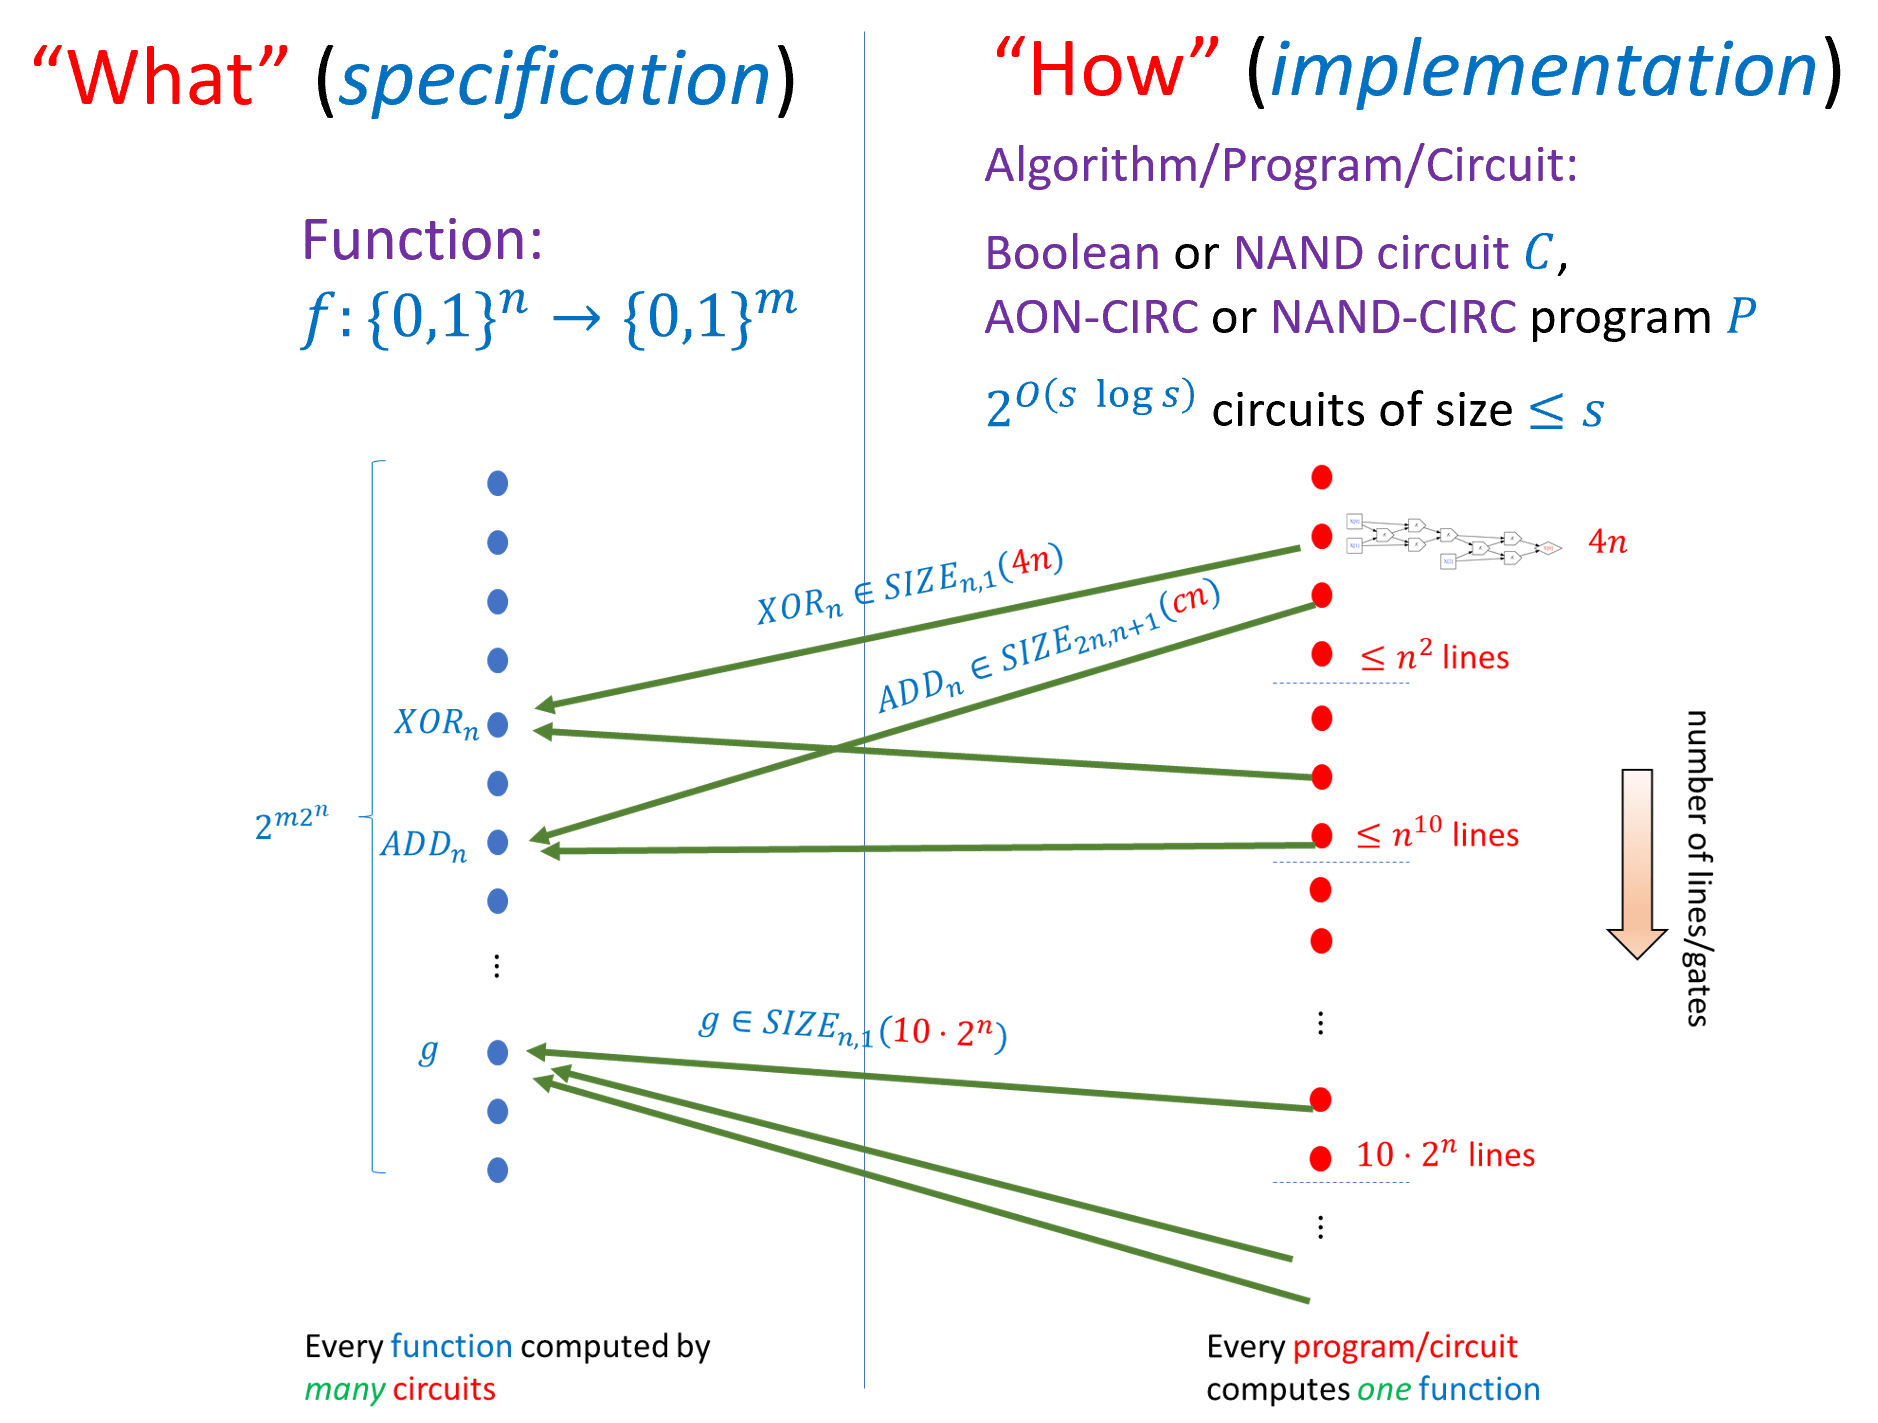 5.8: A finite computational task is specified by a function f:\{0,1\}^n \rightarrow \{0,1\}^m. We can model a computational process using Boolean circuits (of varying gate sets) or straight-line program. Every function can be computed by many programs. We say that f \in \ensuremath{\mathit{SIZE}}_{n,m}(s) if there exists a NAND circuit of at most s gates (equivalently a NAND-CIRC program of at most s lines) that computes f. Every function f:\{0,1\}^n \rightarrow \{0,1\}^m can be computed by a circuit of O(m \cdot 2^n/n) gates. Many functions such as multiplication, addition, solving linear equations, computing the shortest path in a graph, and others, can be computed by circuits of much fewer gates. In particular there is an O(s \log^2 s)-size circuit that computes the map C,x \mapsto C(x) where C is a string describing a circuit of s gates. However, the counting argument shows there do exist some functions f:\{0,1\}^n \rightarrow \{0,1\}^m that require \Omega(m \cdot 2^n /n) gates to compute.